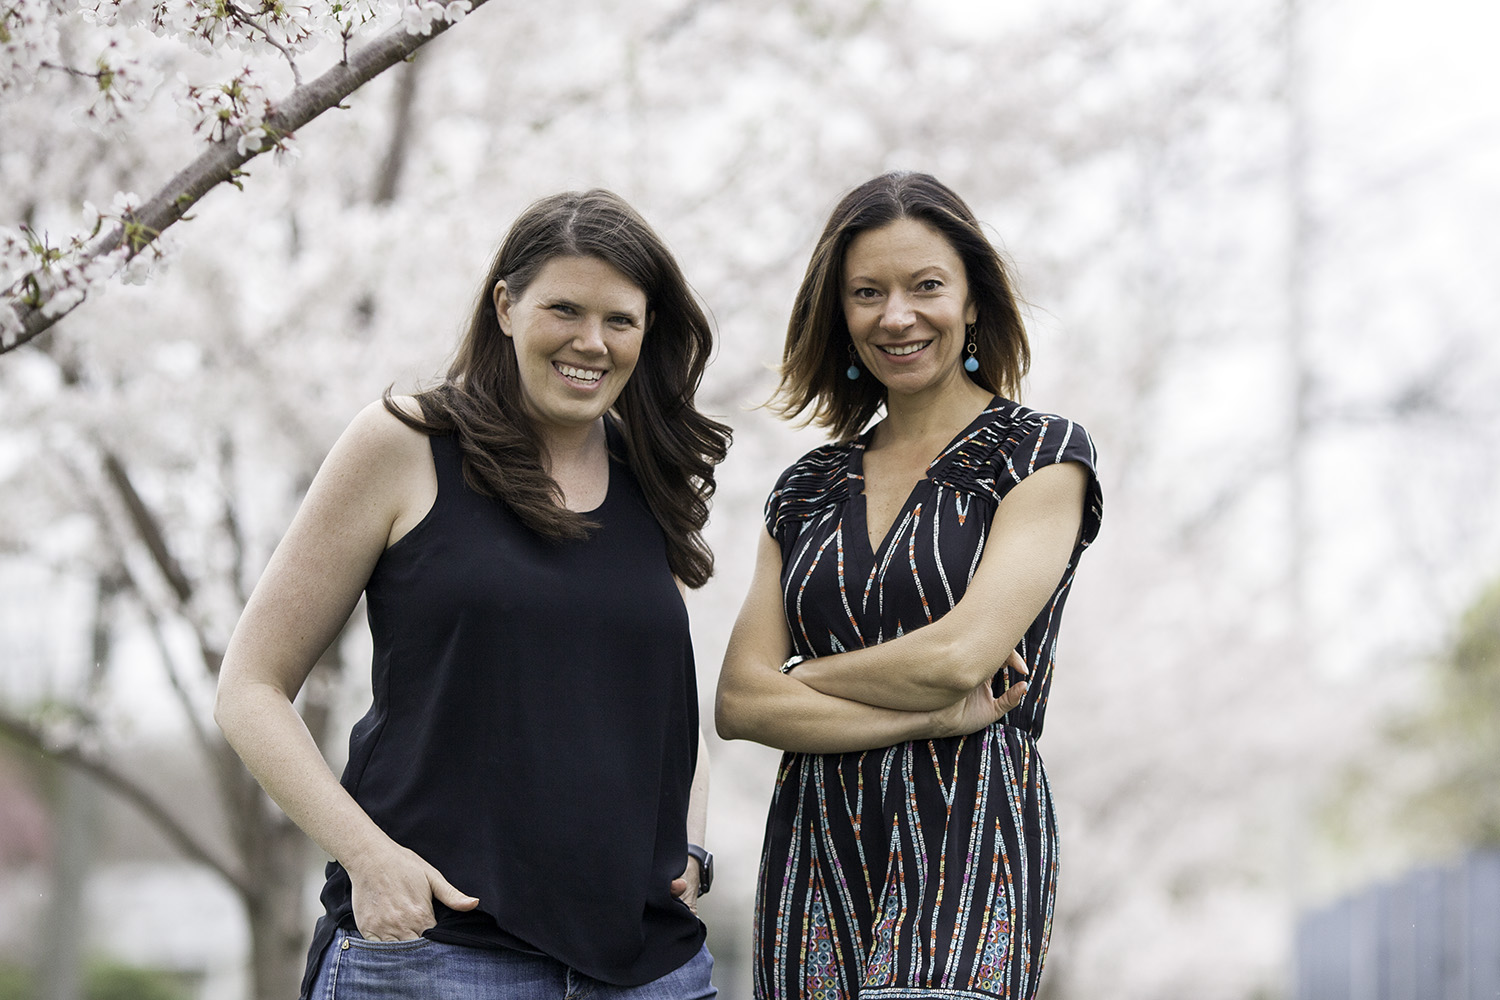 Sarah Roshan (left) and Sarah Lehberger (right), Co-Founders of SHE WILL THRIVE